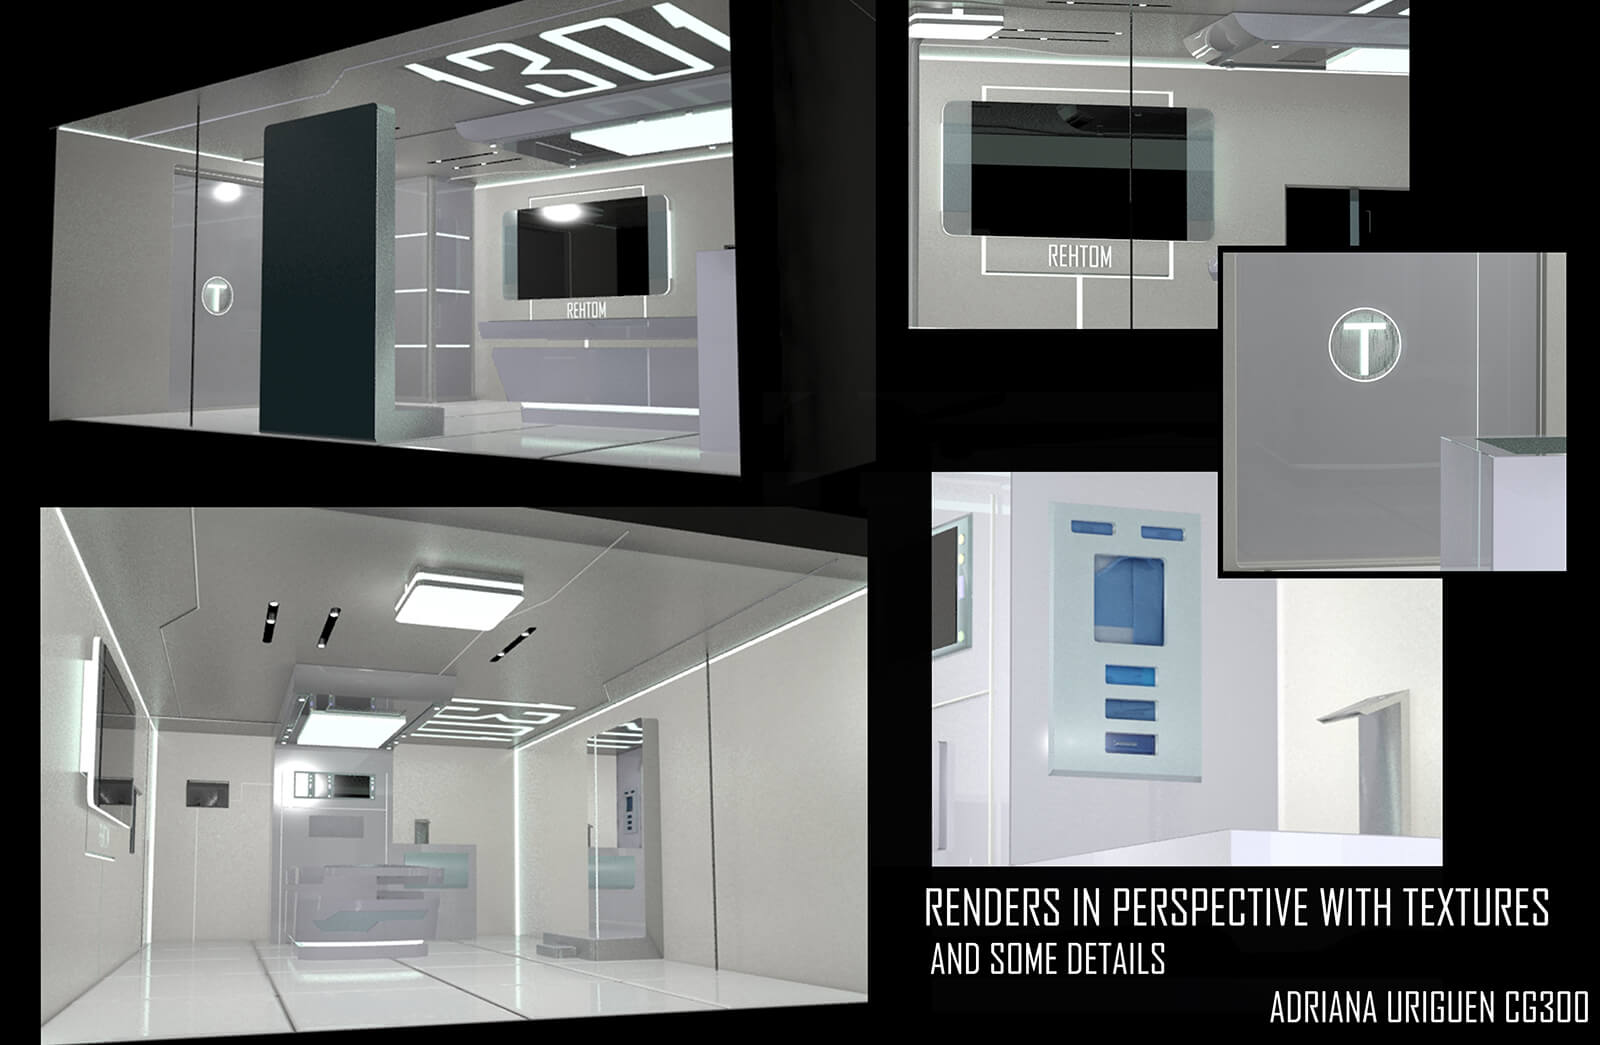 Renders of a futuristic medical bay with textures